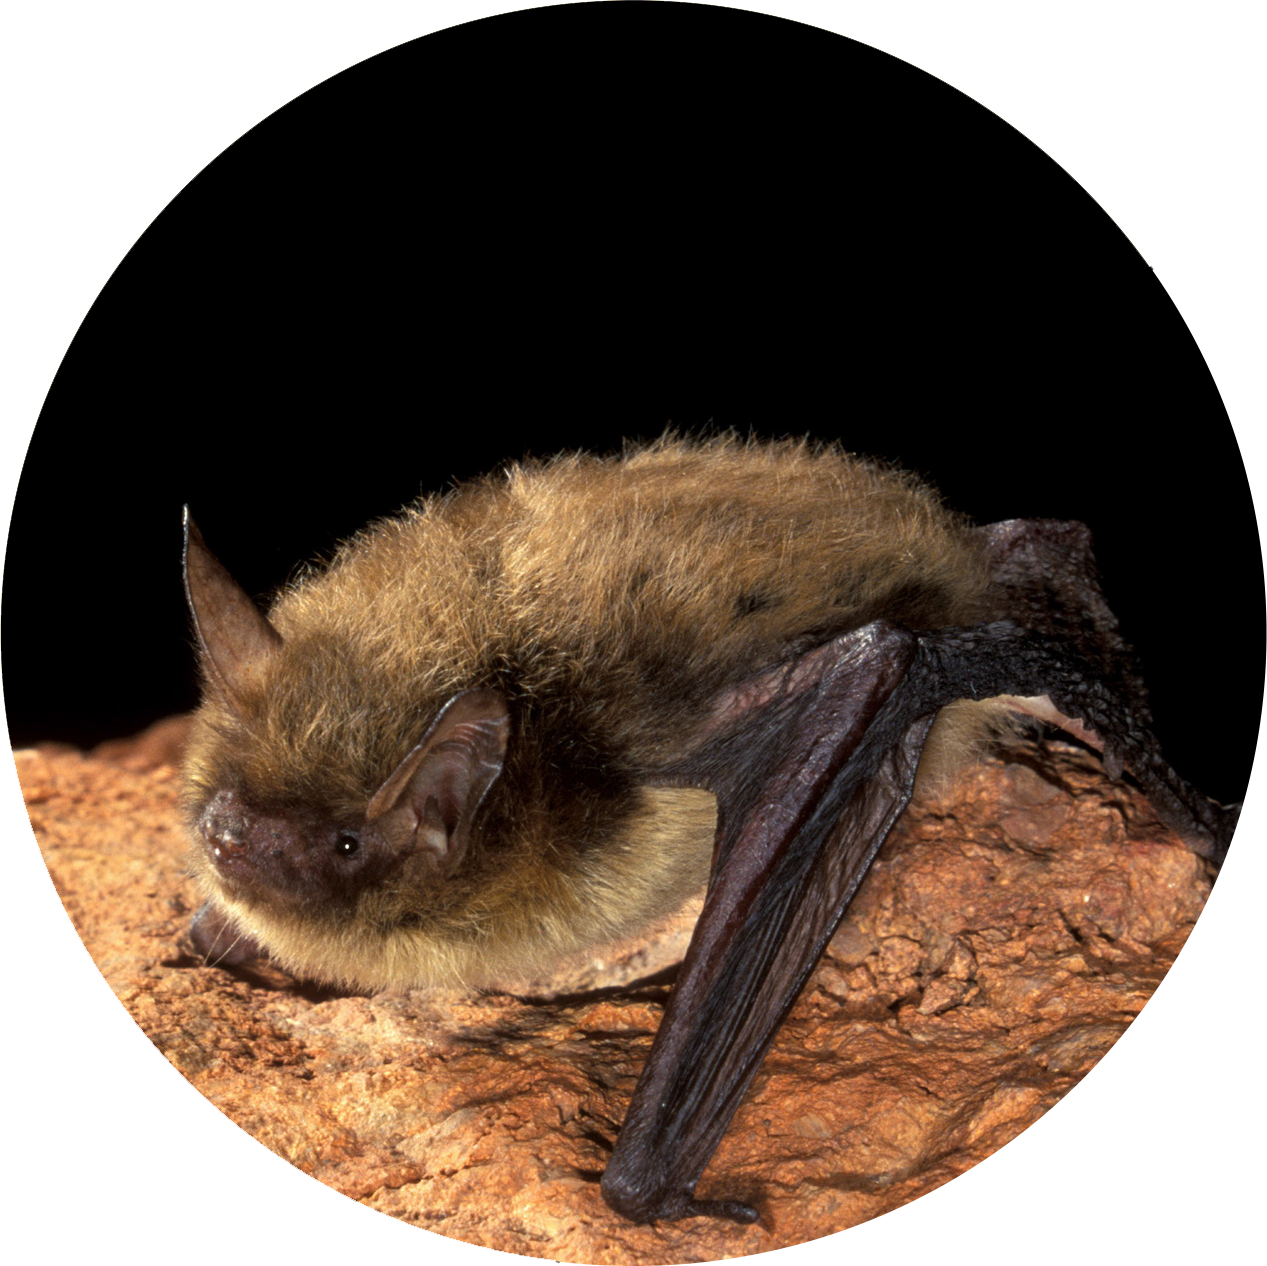 Photo courtesy of Bat Conservational International.